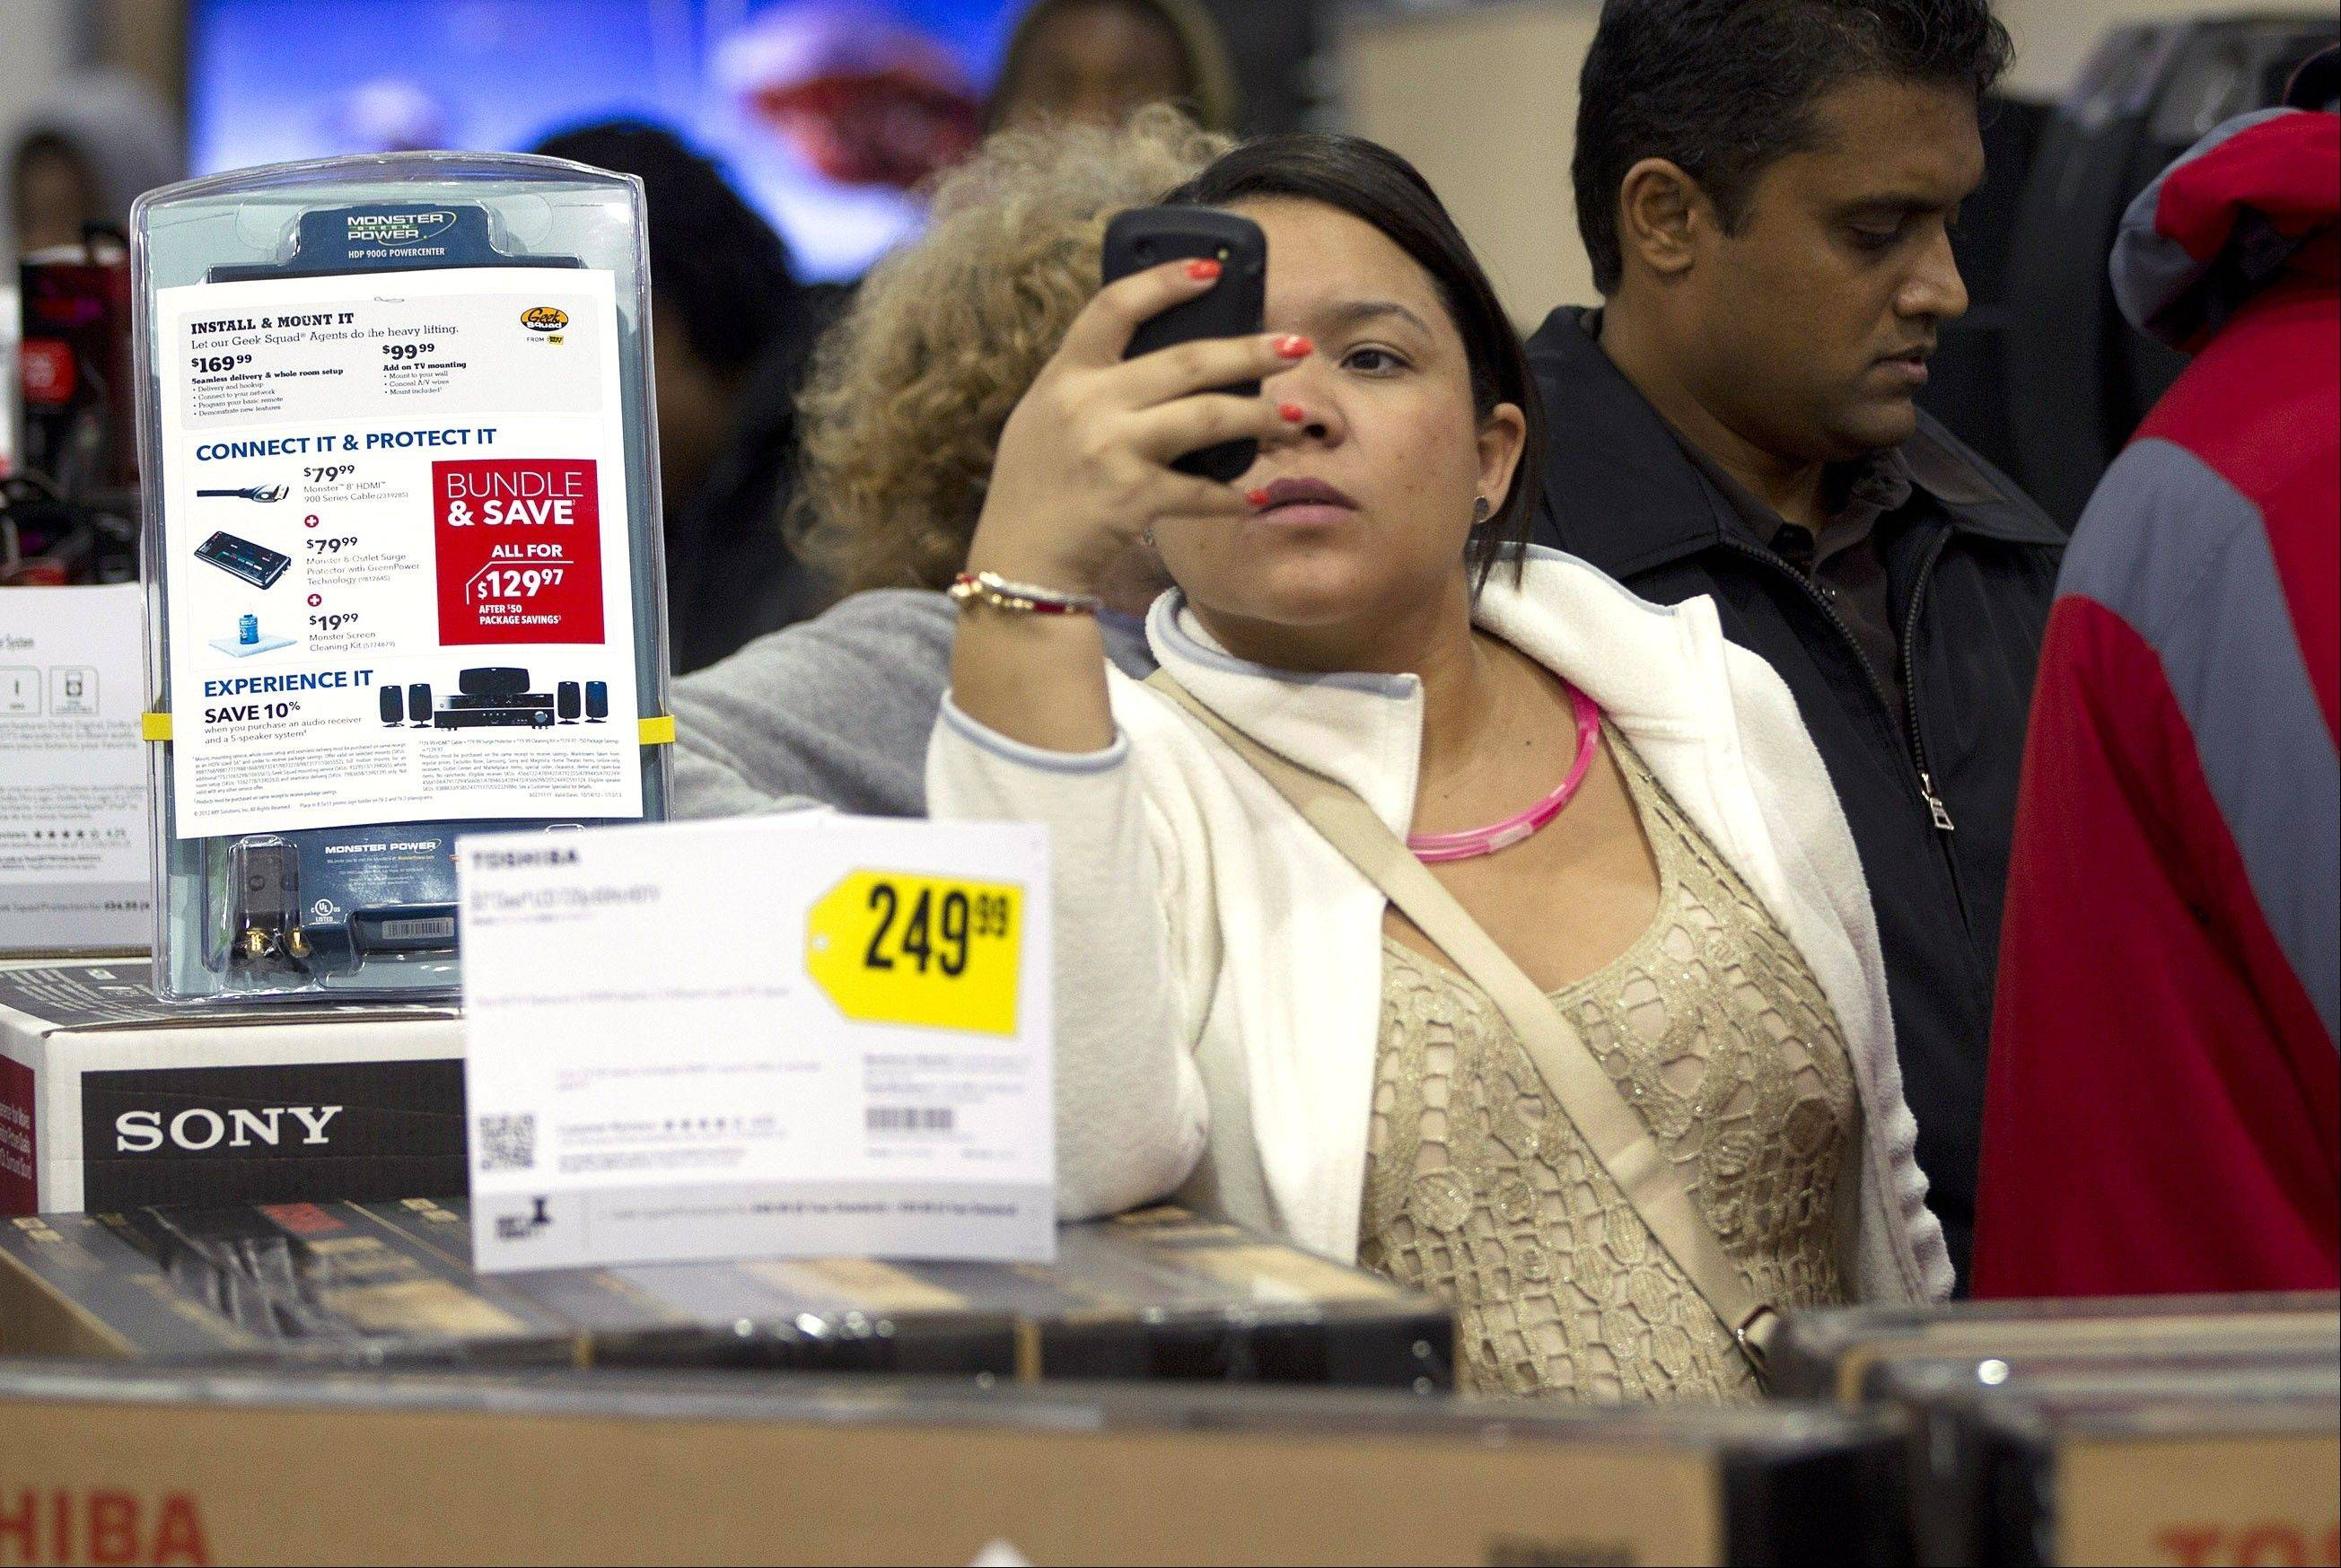 A shopper uses her smartphone at a Best Buy in Pembroke Pines, Fla. Shoppers' actions on Facebook and elsewhere online help dictate what's in stores during this holiday season.